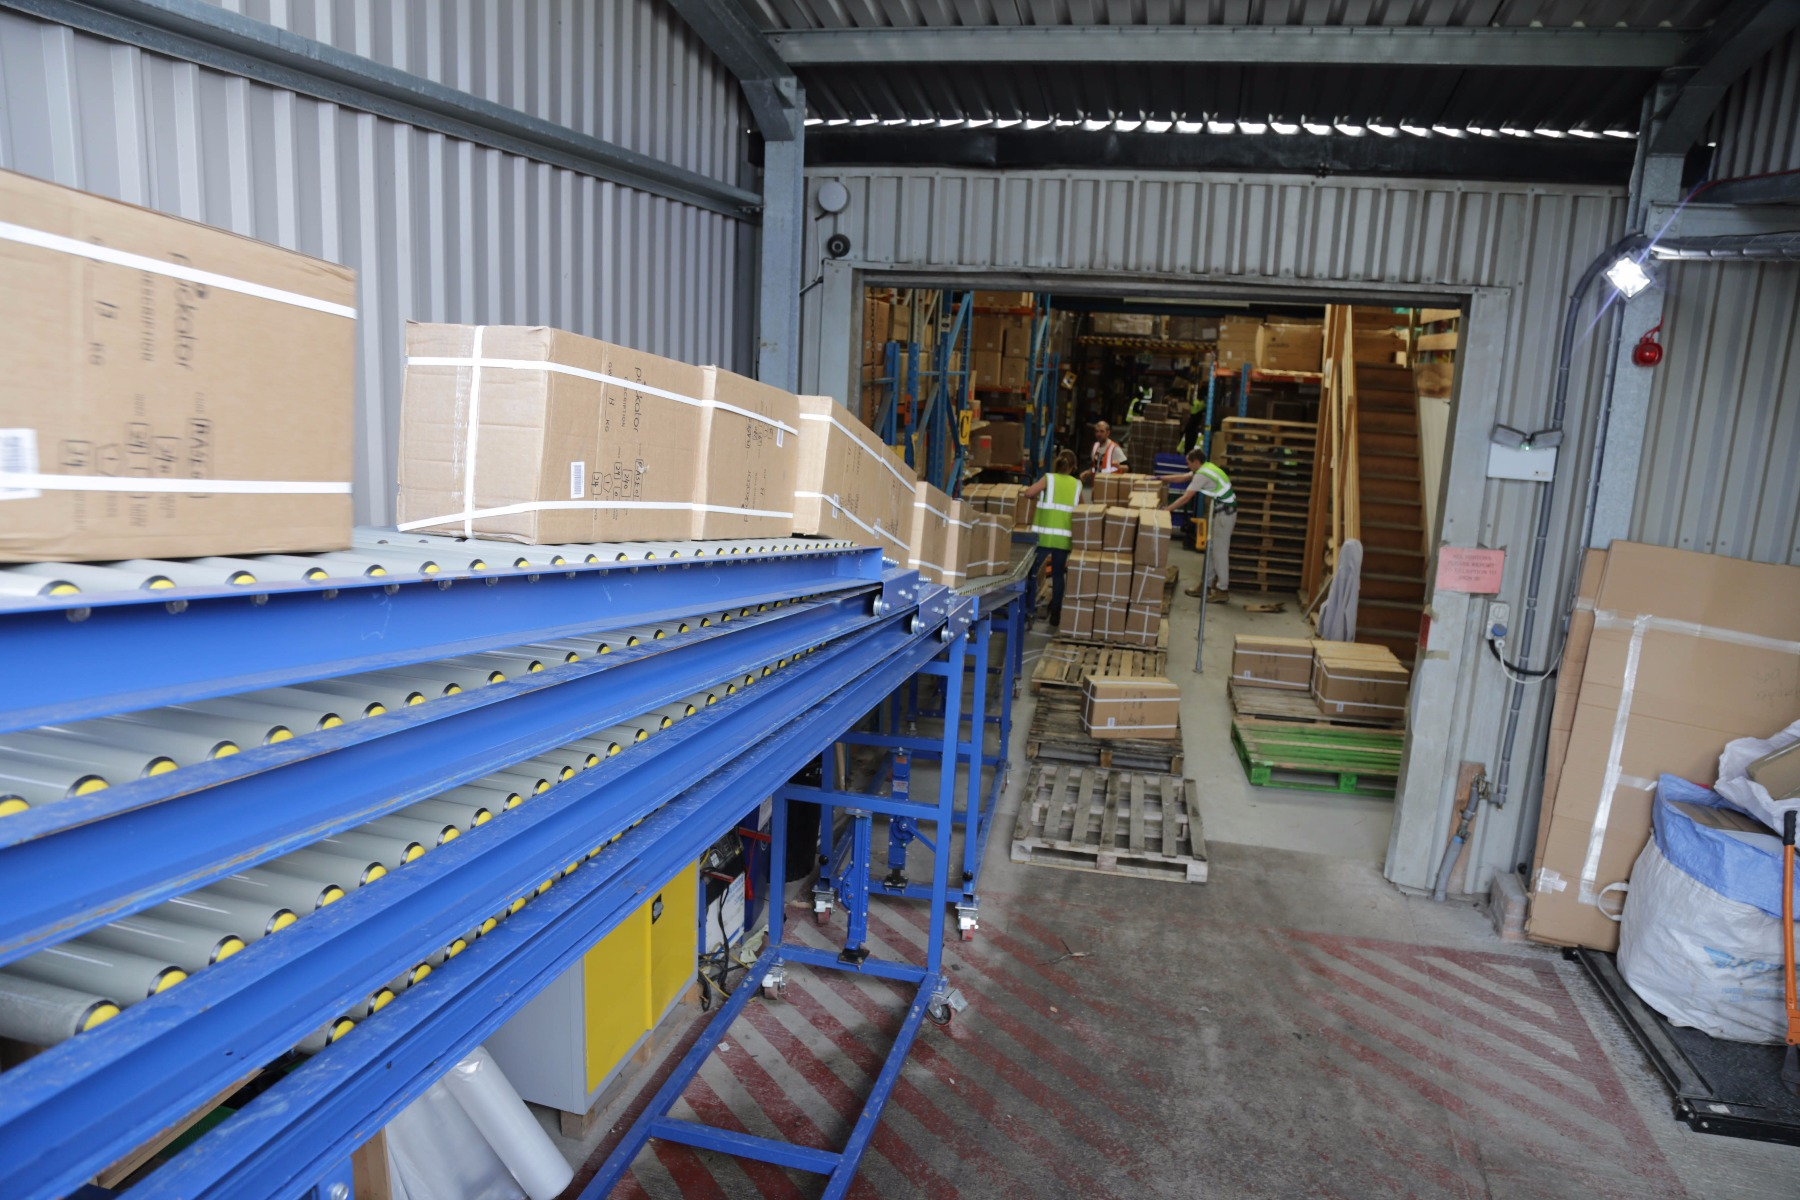 Extendable roller conveyor for unloading vehicles